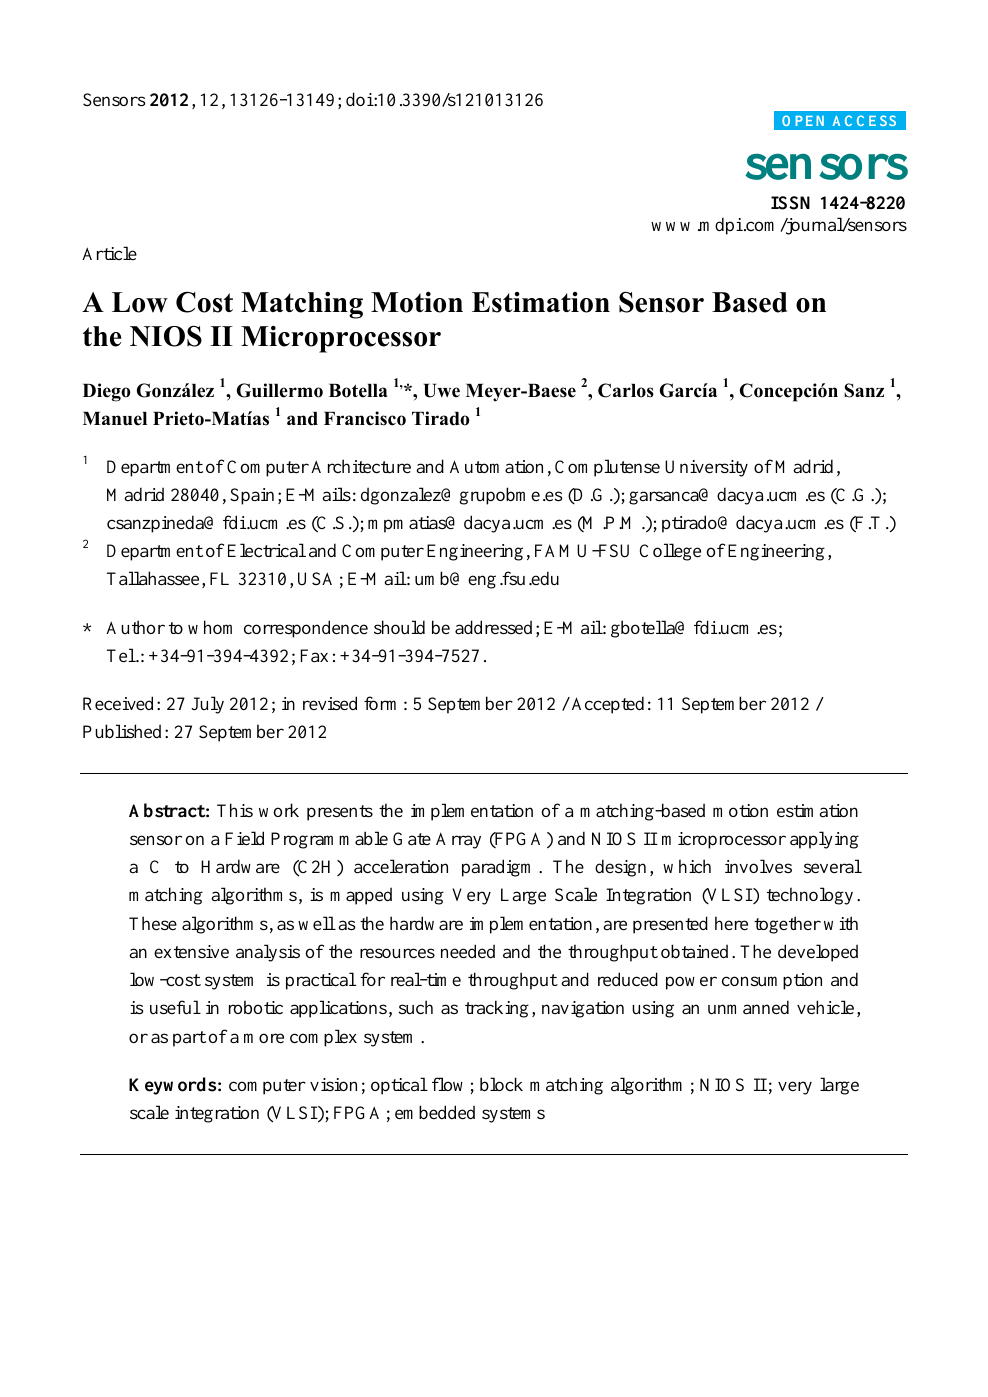 A Low Cost Matching Motion Estimation Sensor Based on the